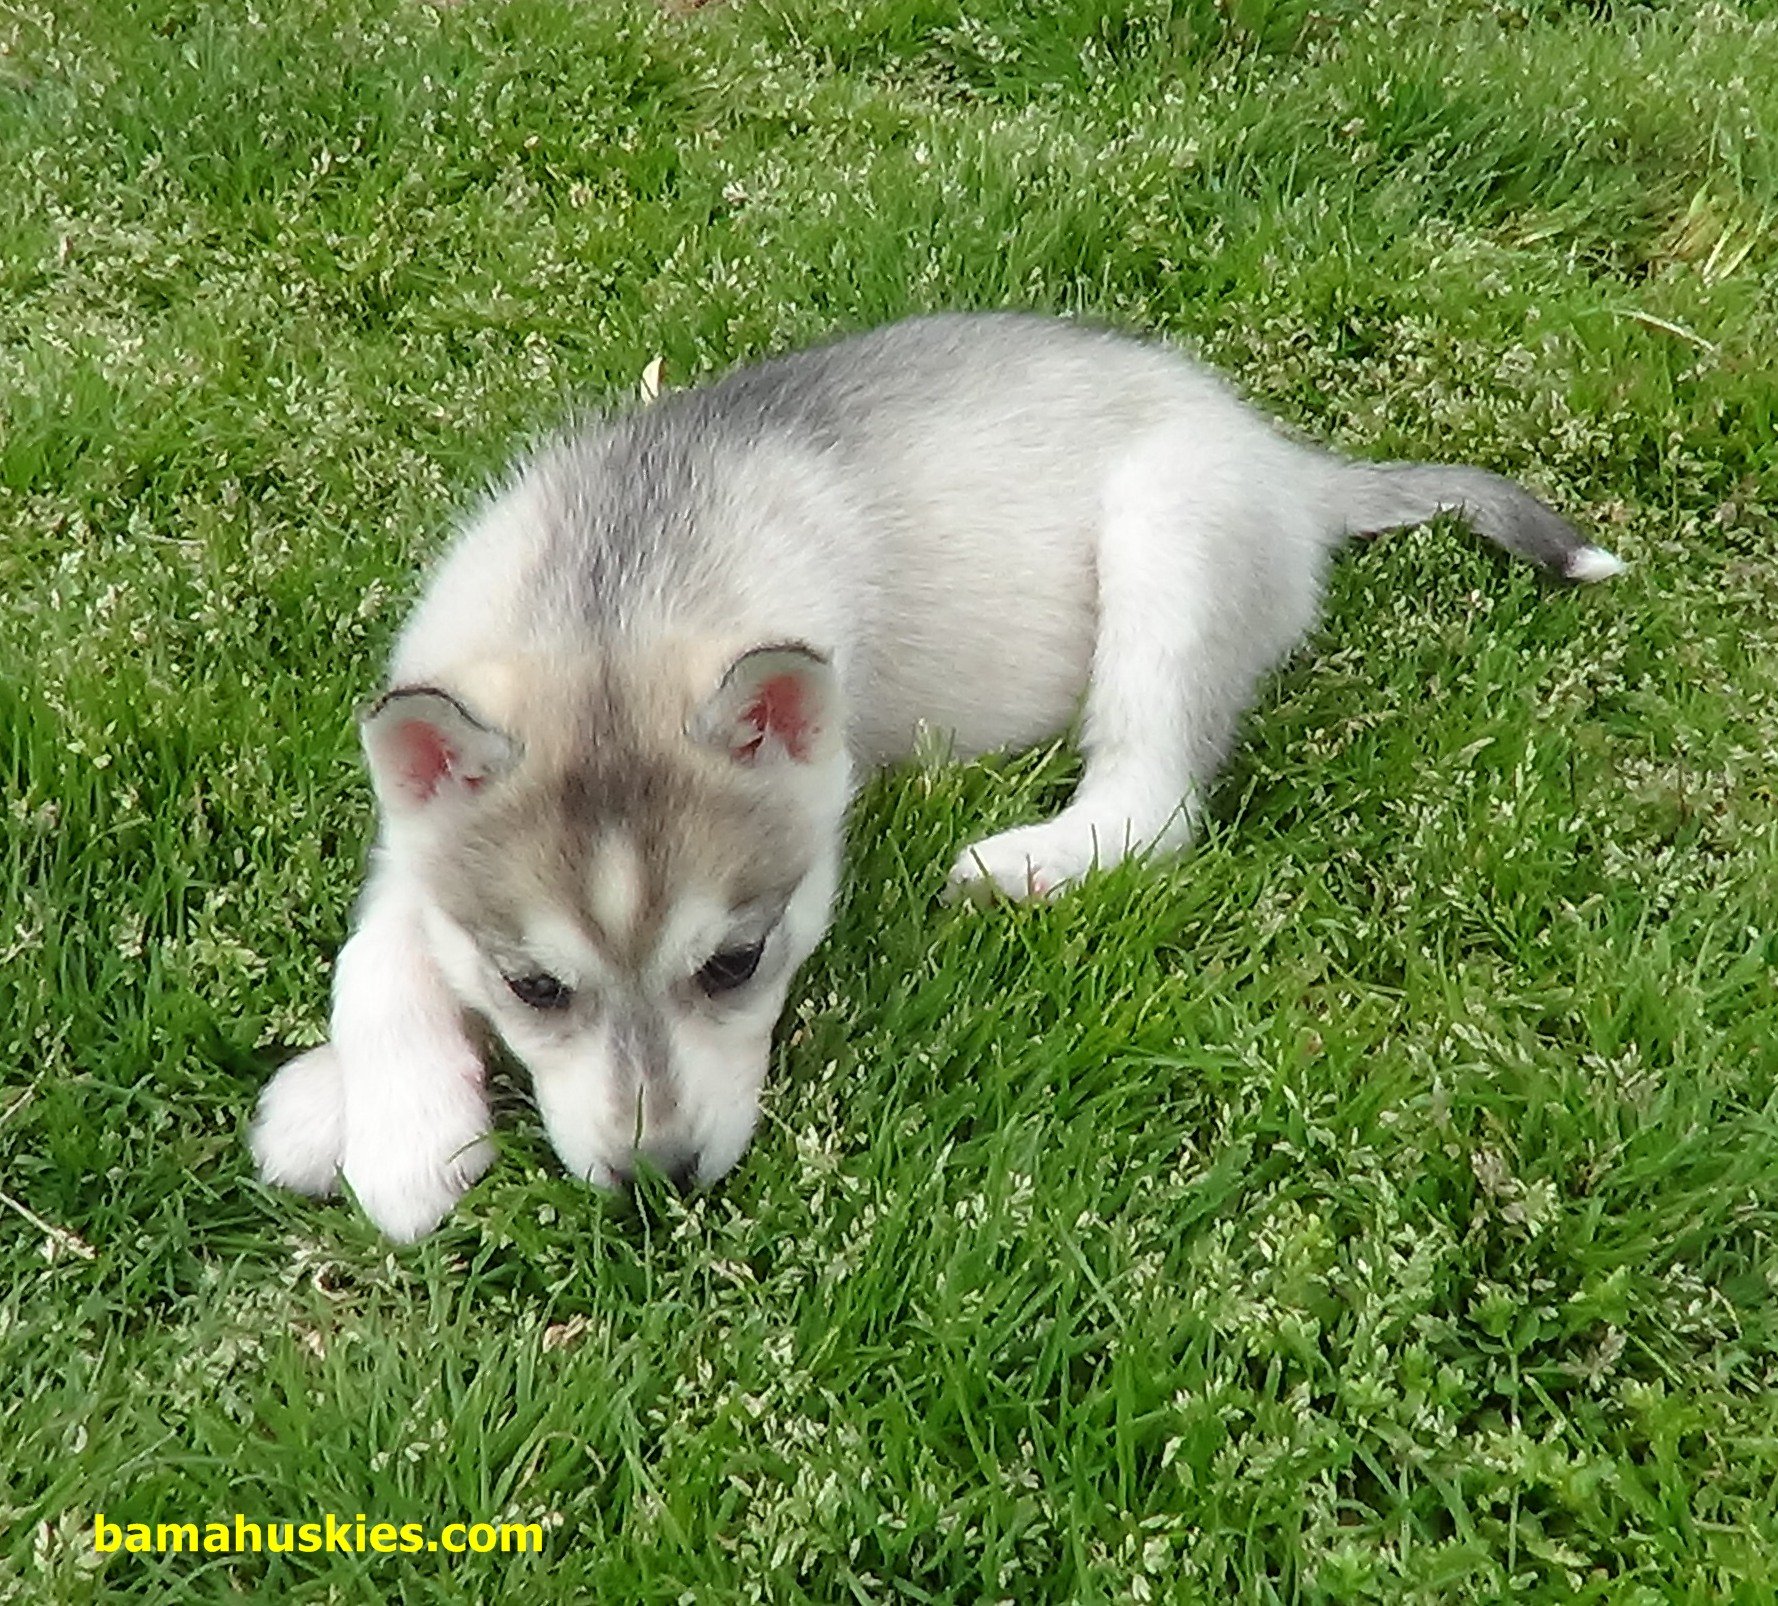 Why Does My Husky Dog Eat Grass Siberian Husky Puppies For Sale